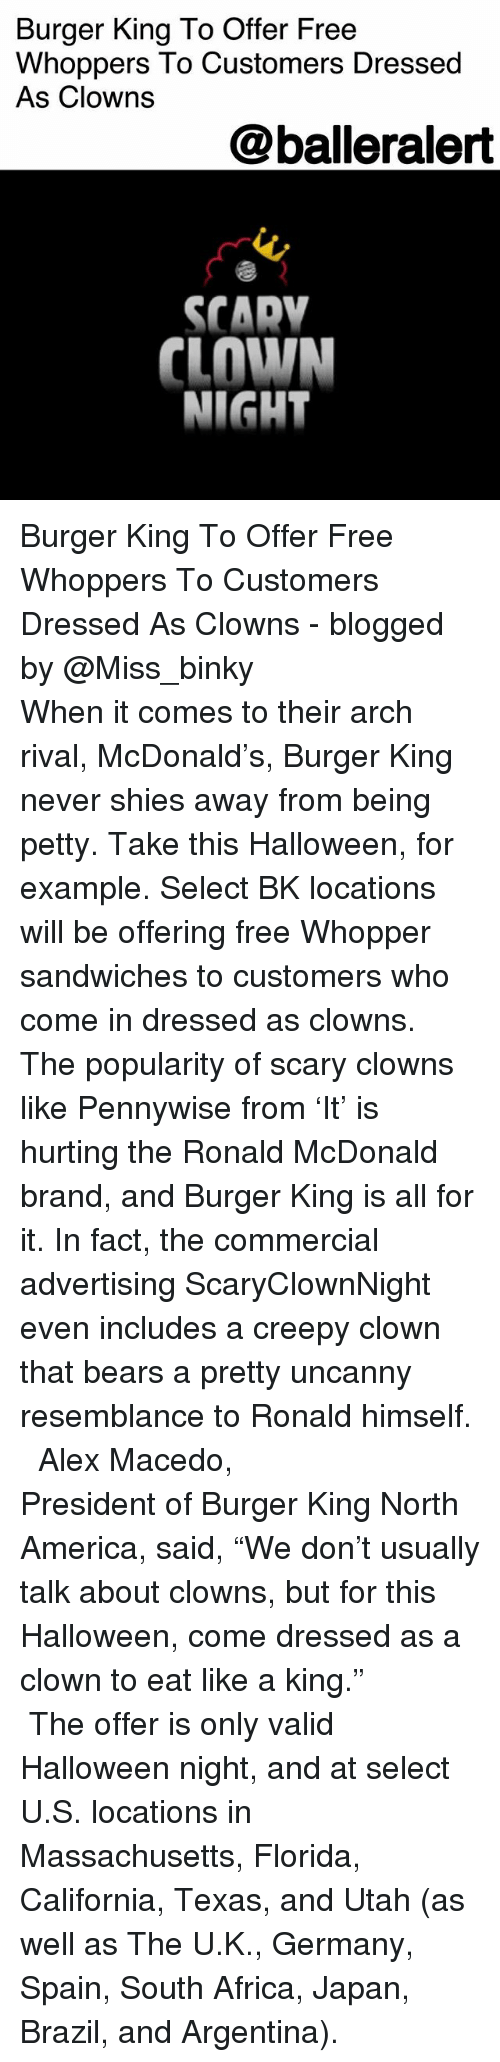 """Africa, America, and Burger King: Burger King To Offer Free  Whoppers To Customers Dressed  As Clowns  @balleralert  SCADV  CLOWN  NIGHT Burger King To Offer Free Whoppers To Customers Dressed As Clowns - blogged by @Miss_binky ⠀⠀⠀⠀⠀⠀⠀ ⠀⠀⠀⠀⠀⠀⠀ When it comes to their arch rival, McDonald's, Burger King never shies away from being petty. Take this Halloween, for example. Select BK locations will be offering free Whopper sandwiches to customers who come in dressed as clowns. The popularity of scary clowns like Pennywise from 'It' is hurting the Ronald McDonald brand, and Burger King is all for it. In fact, the commercial advertising ScaryClownNight even includes a creepy clown that bears a pretty uncanny resemblance to Ronald himself. ⠀⠀⠀⠀⠀⠀⠀ ⠀⠀⠀⠀⠀⠀⠀ Alex Macedo, President of Burger King North America, said, """"We don't usually talk about clowns, but for this Halloween, come dressed as a clown to eat like a king."""" ⠀⠀⠀⠀⠀⠀⠀ ⠀⠀⠀⠀⠀⠀⠀ The offer is only valid Halloween night, and at select U.S. locations in Massachusetts, Florida, California, Texas, and Utah (as well as The U.K., Germany, Spain, South Africa, Japan, Brazil, and Argentina)."""